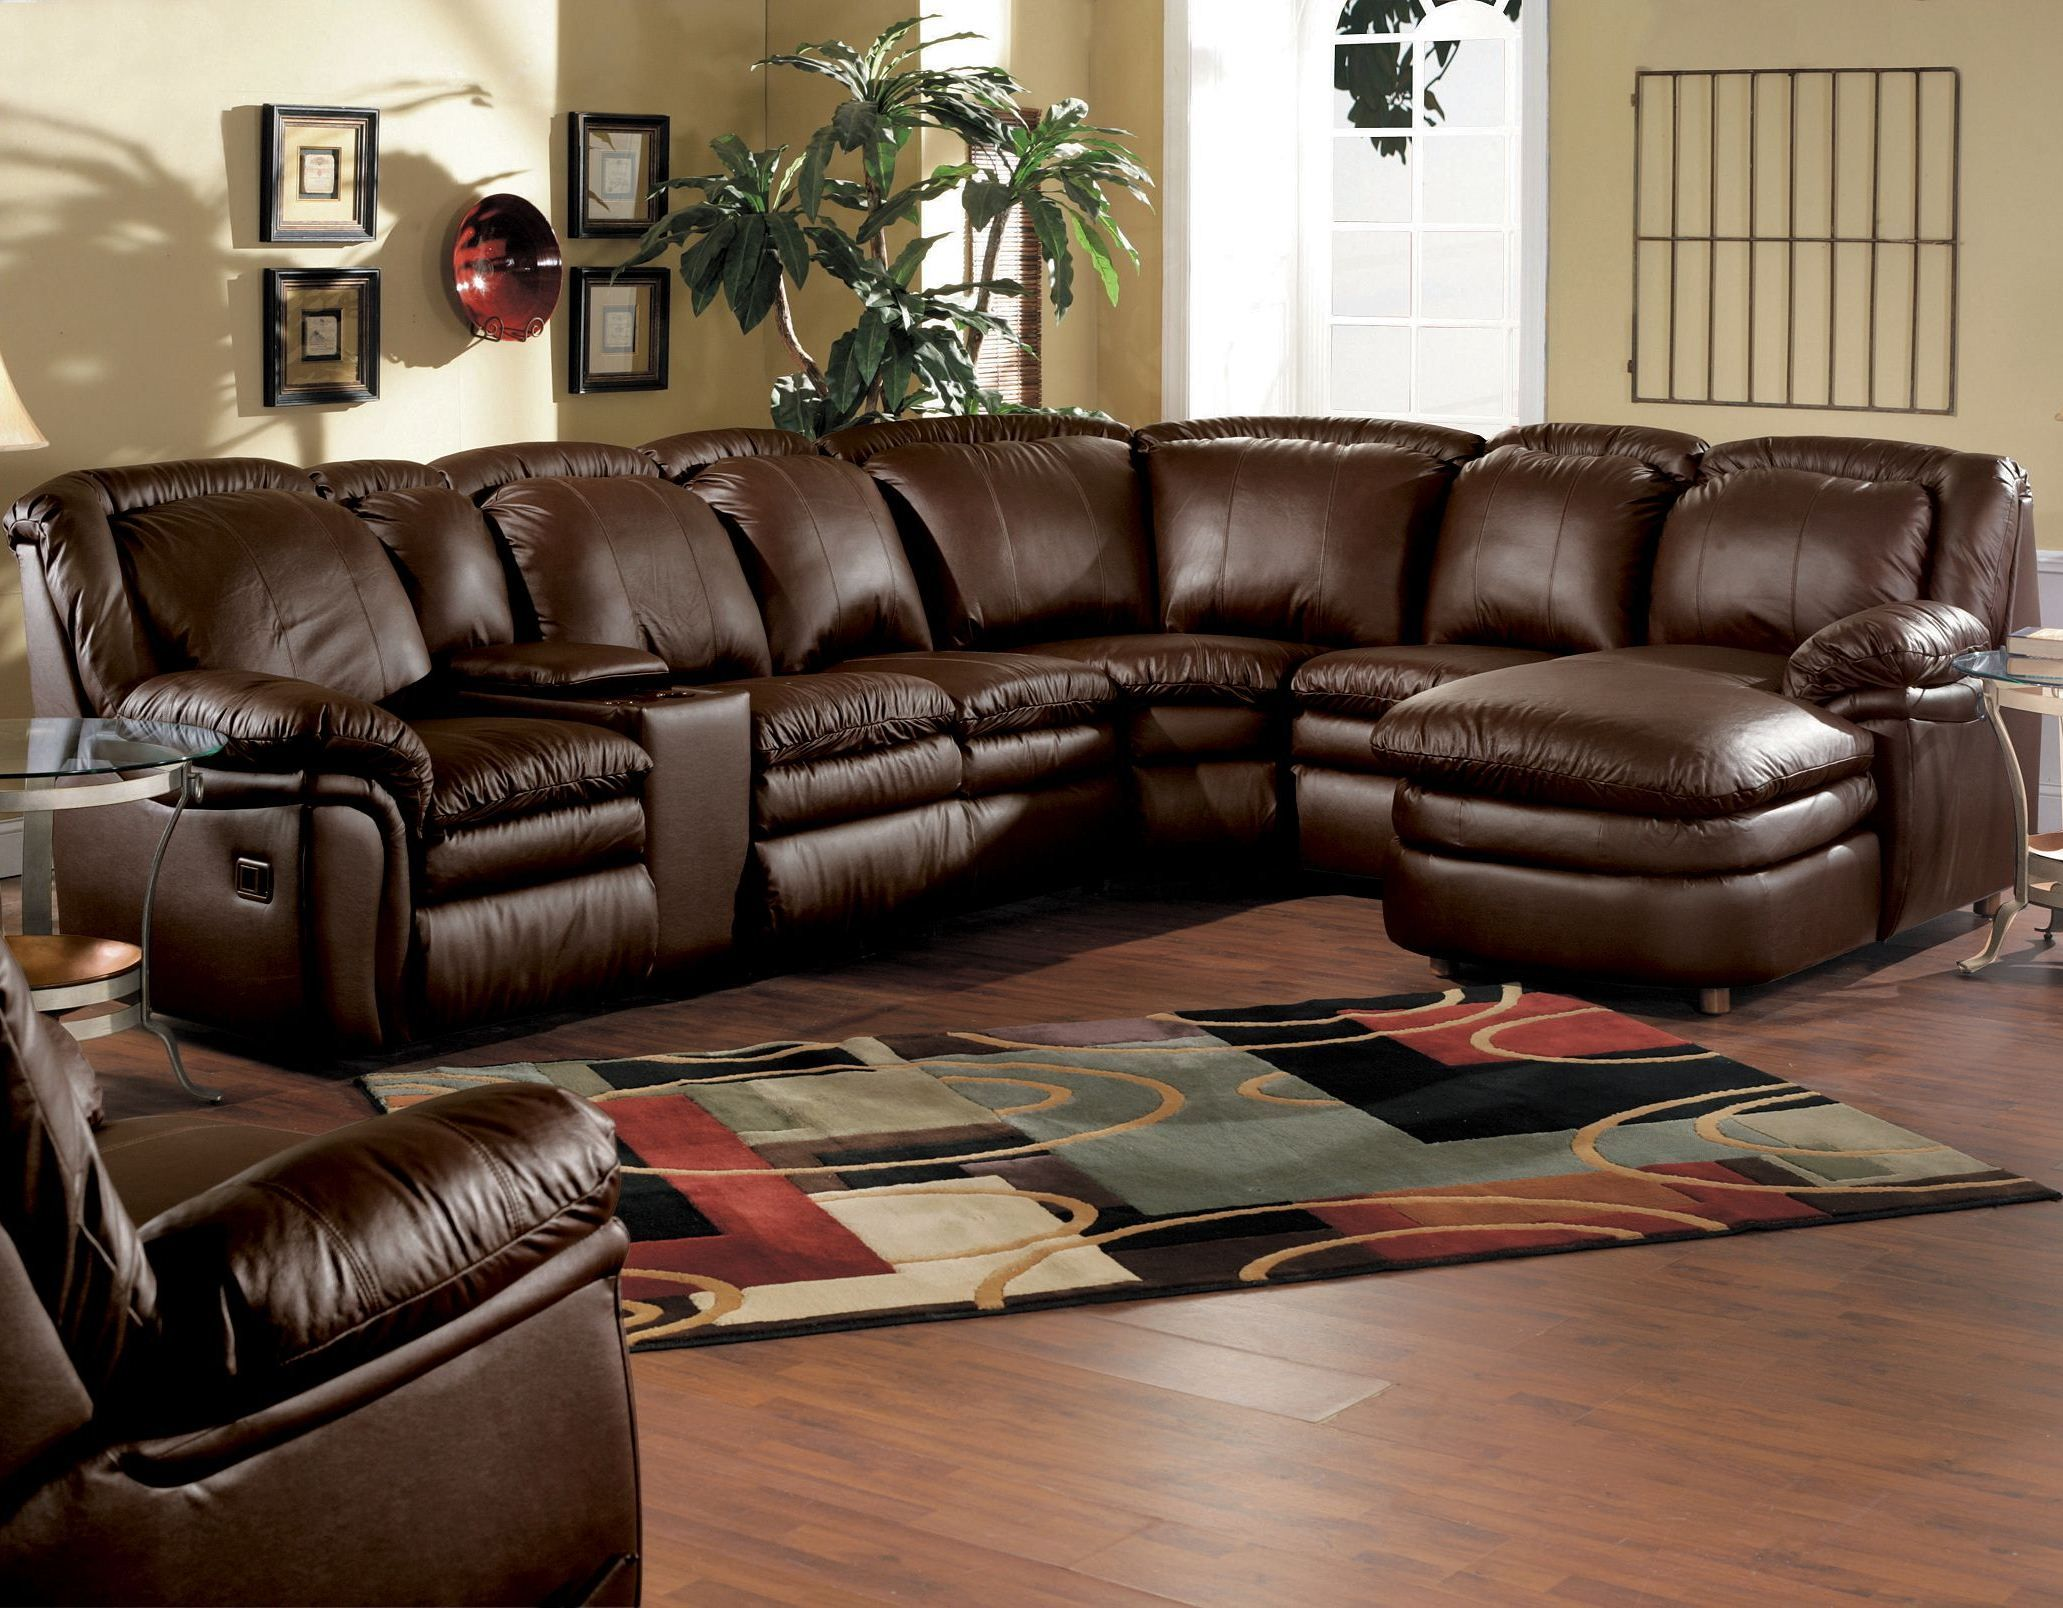 Ultimate Comfort Reclining Leather Stallion Sectional With A Chaise By Lane Home Furnishings Ava Furniture Hudson Furniture Reclining Sectional With Chaise